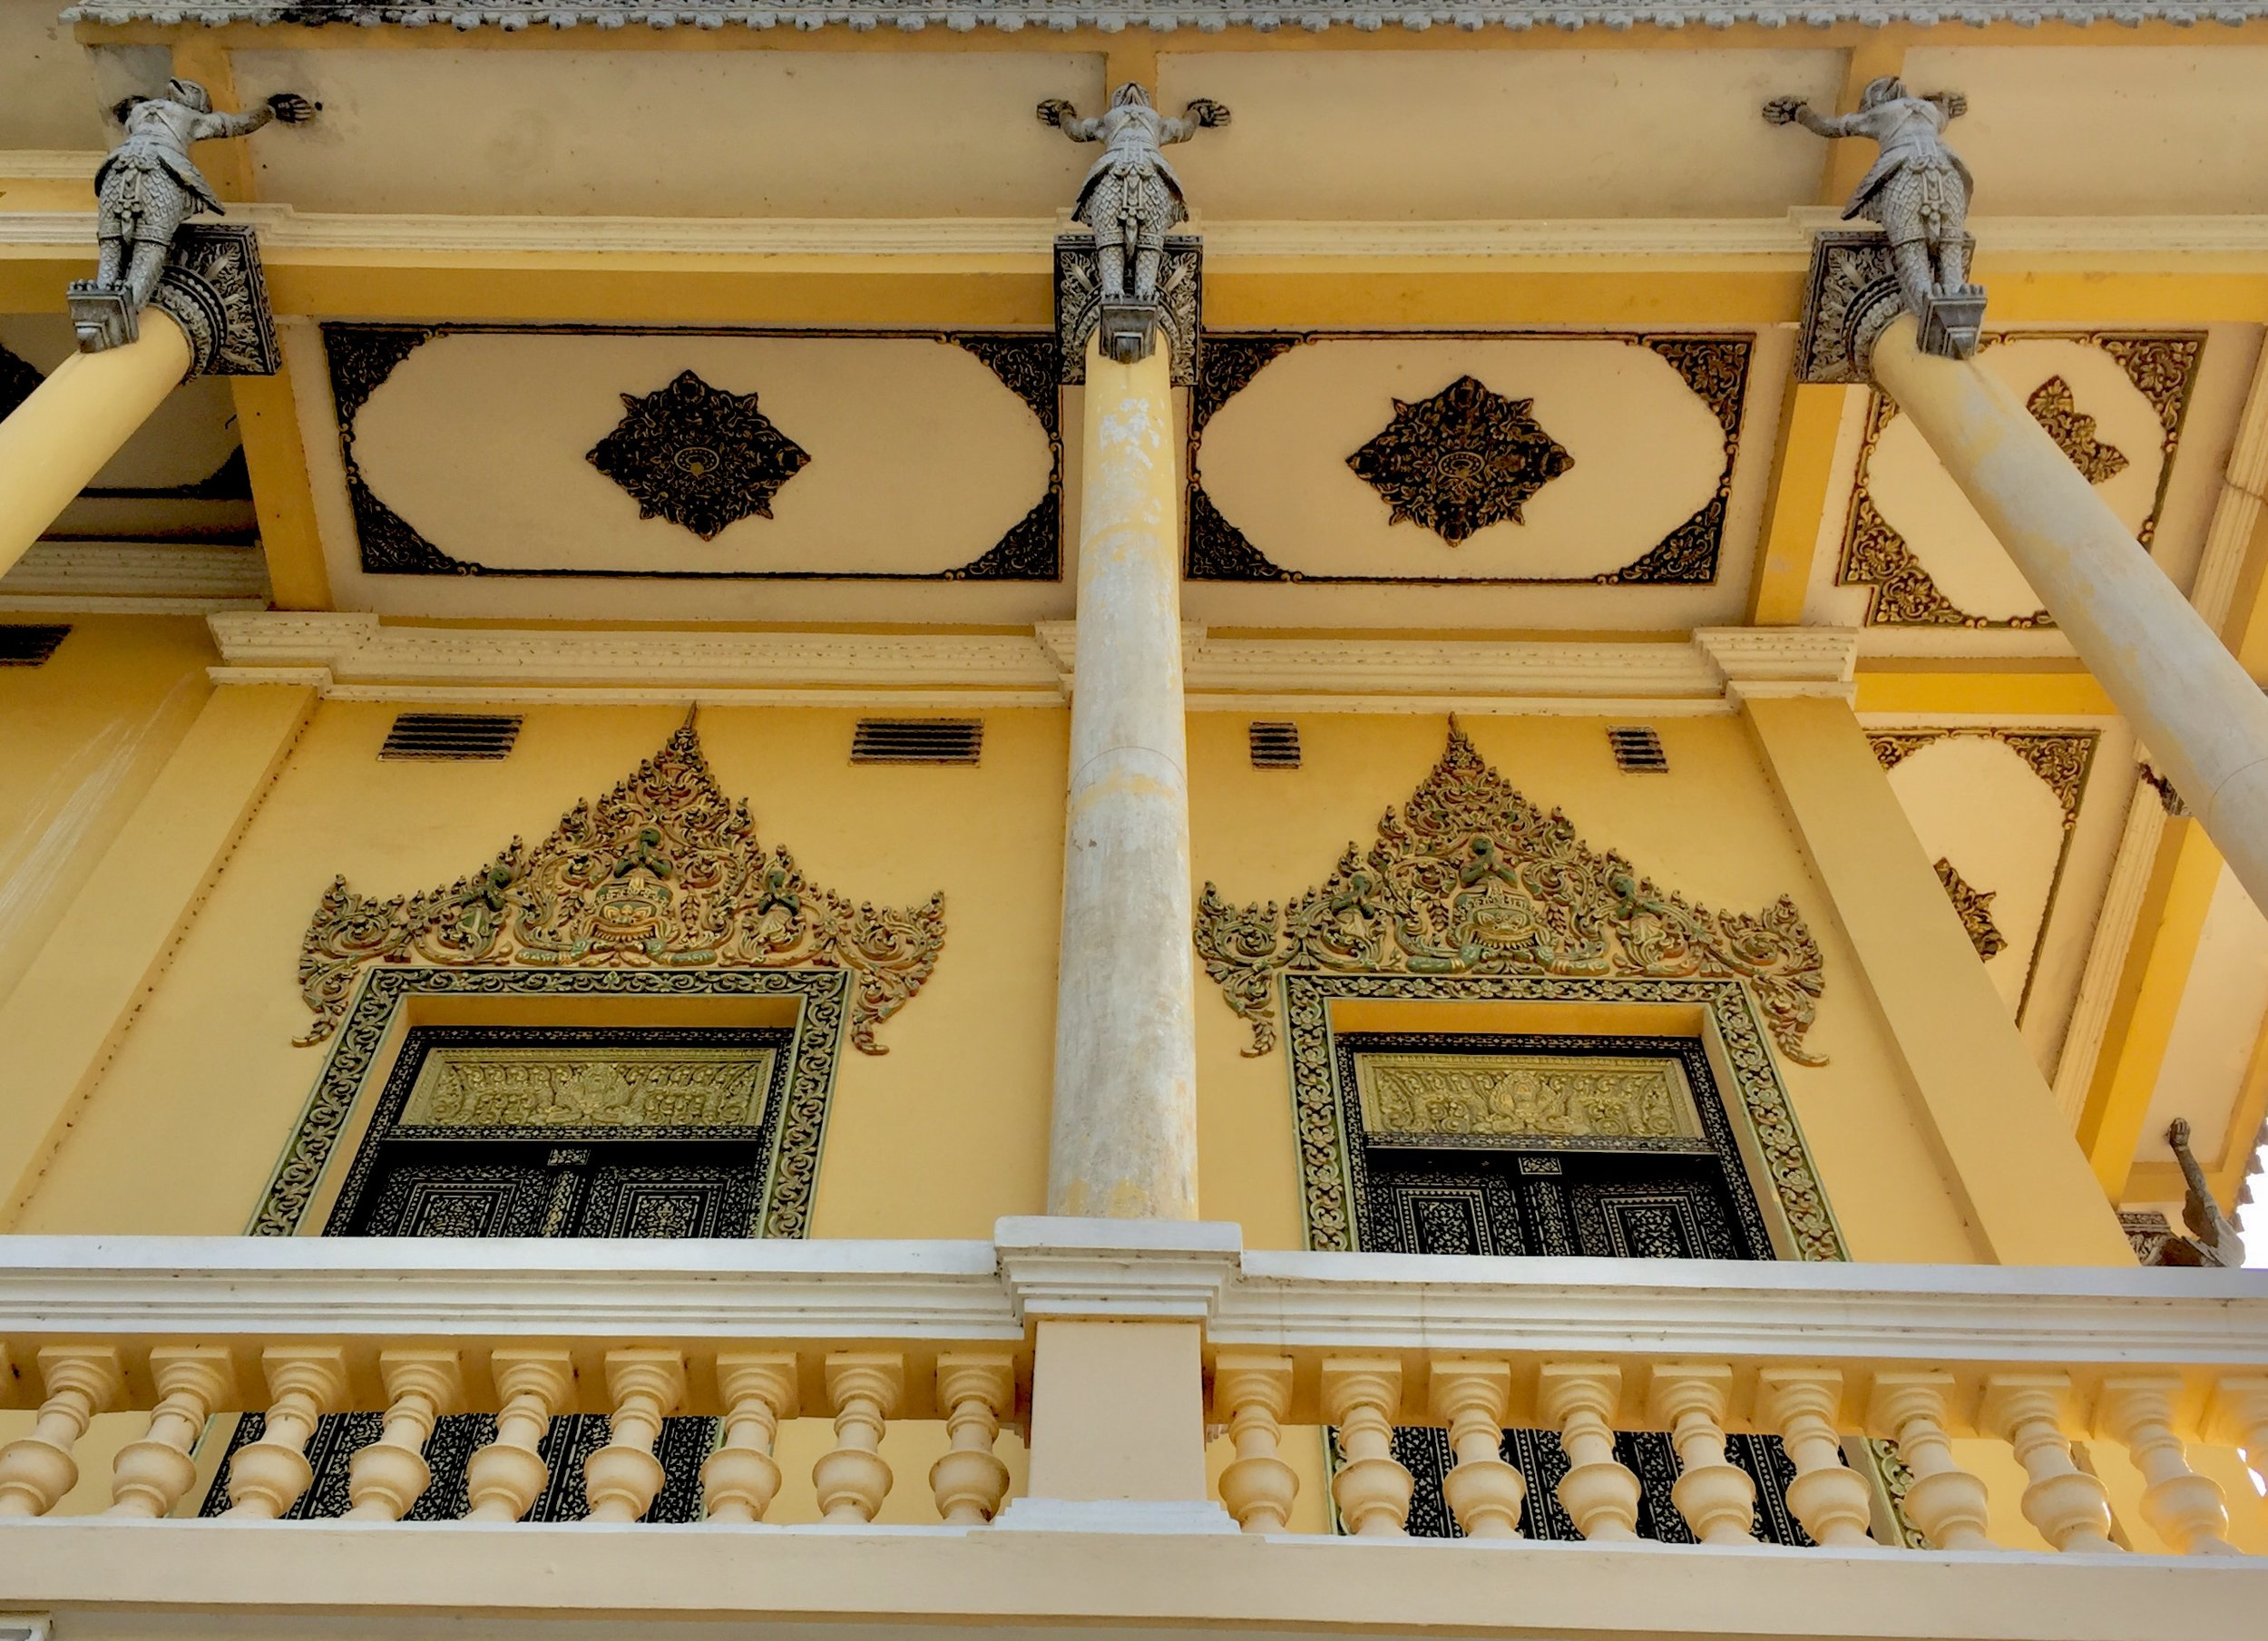 The Door frame and Ceiling of Pu Veal temple, Battambang